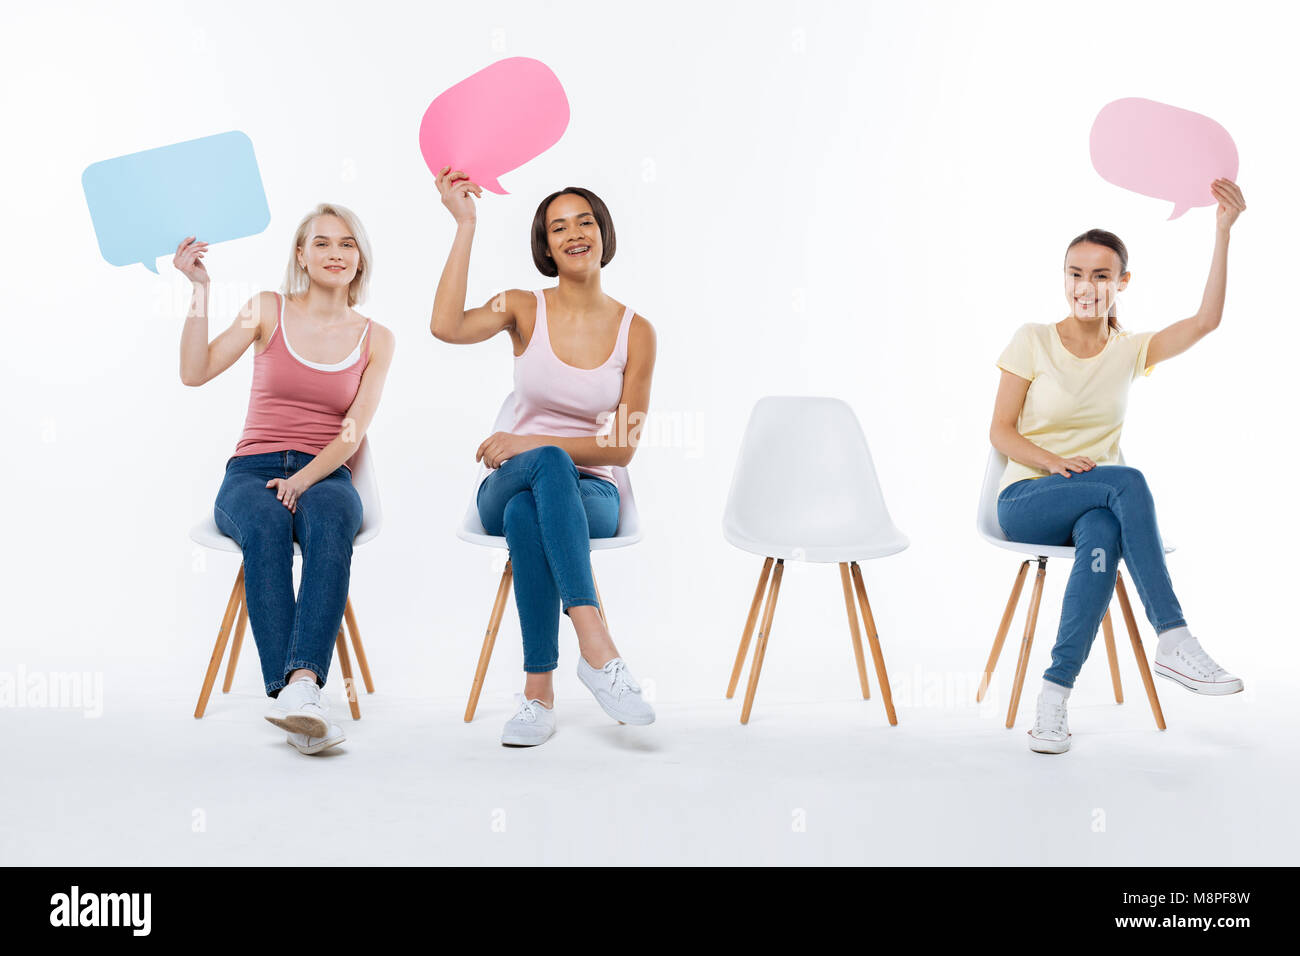 Delighted nice woman showing their signs - Stock Image